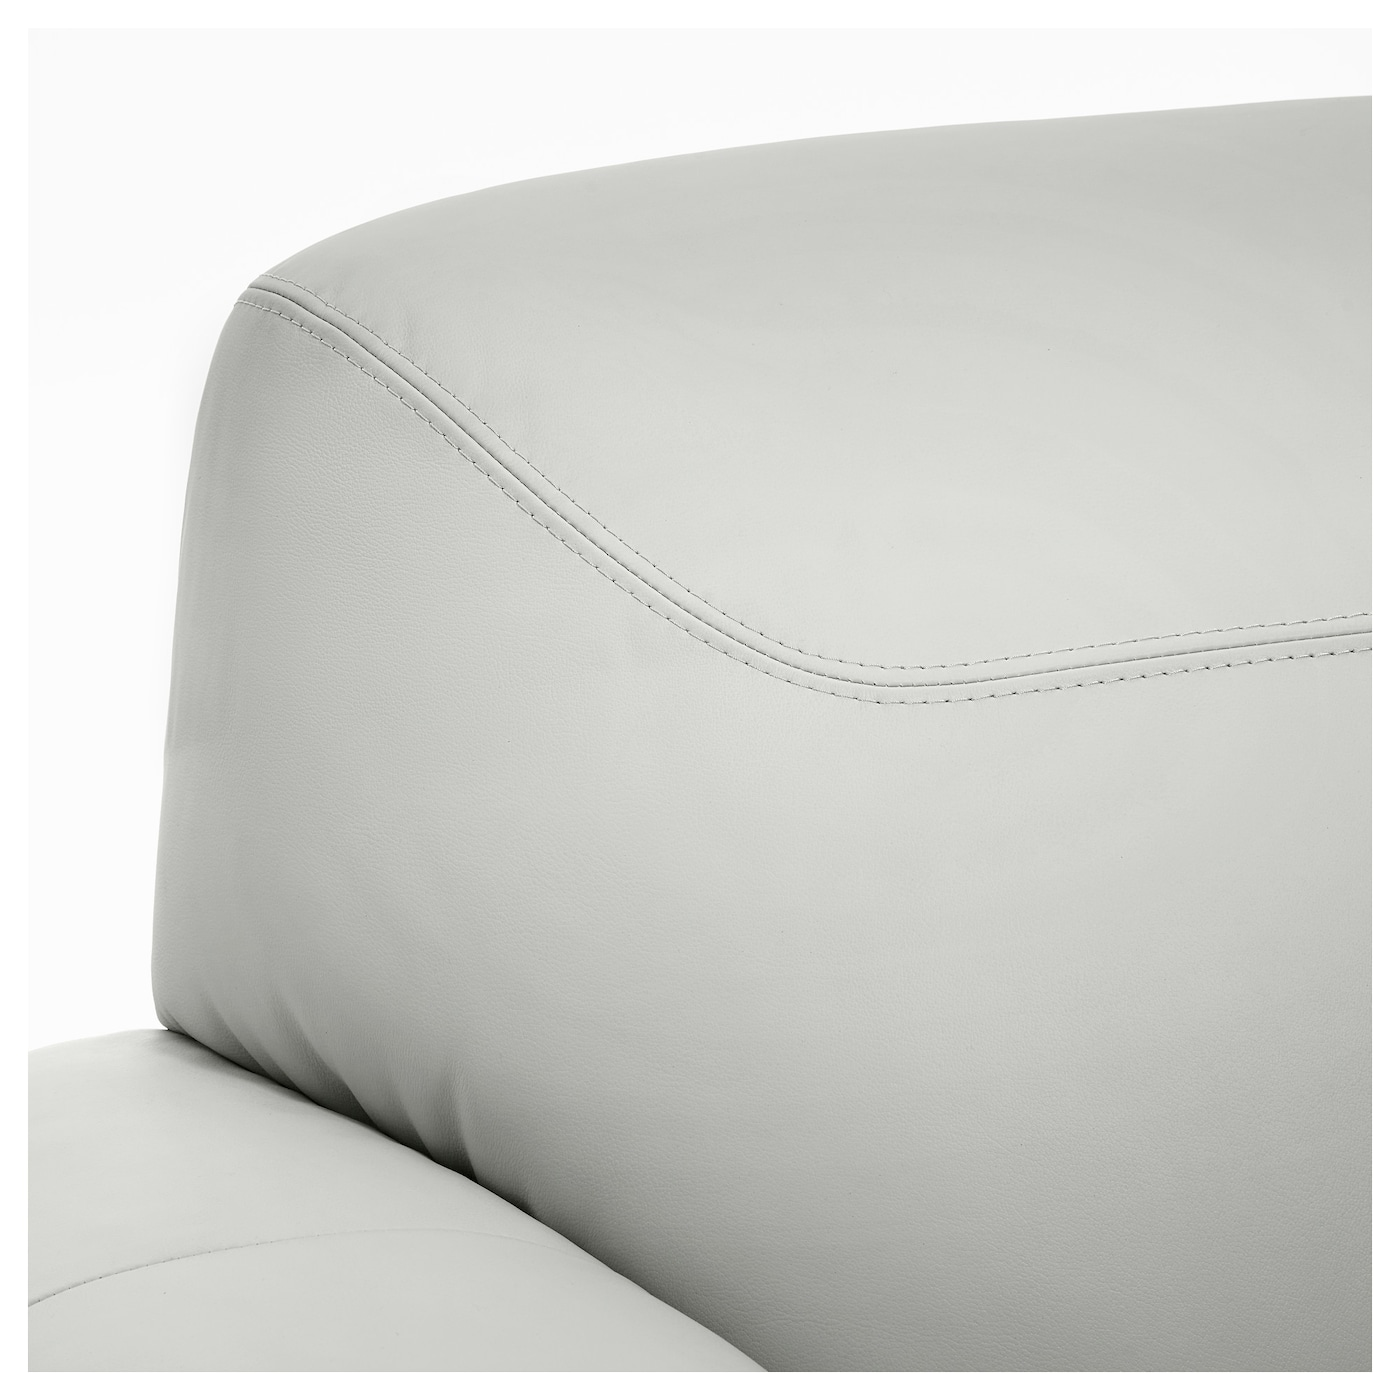 Ikea white leather sofa - Ikea Timsfors Three Seat Sofa The Armrests With Extra Padding Are Comfortable To Lean Against